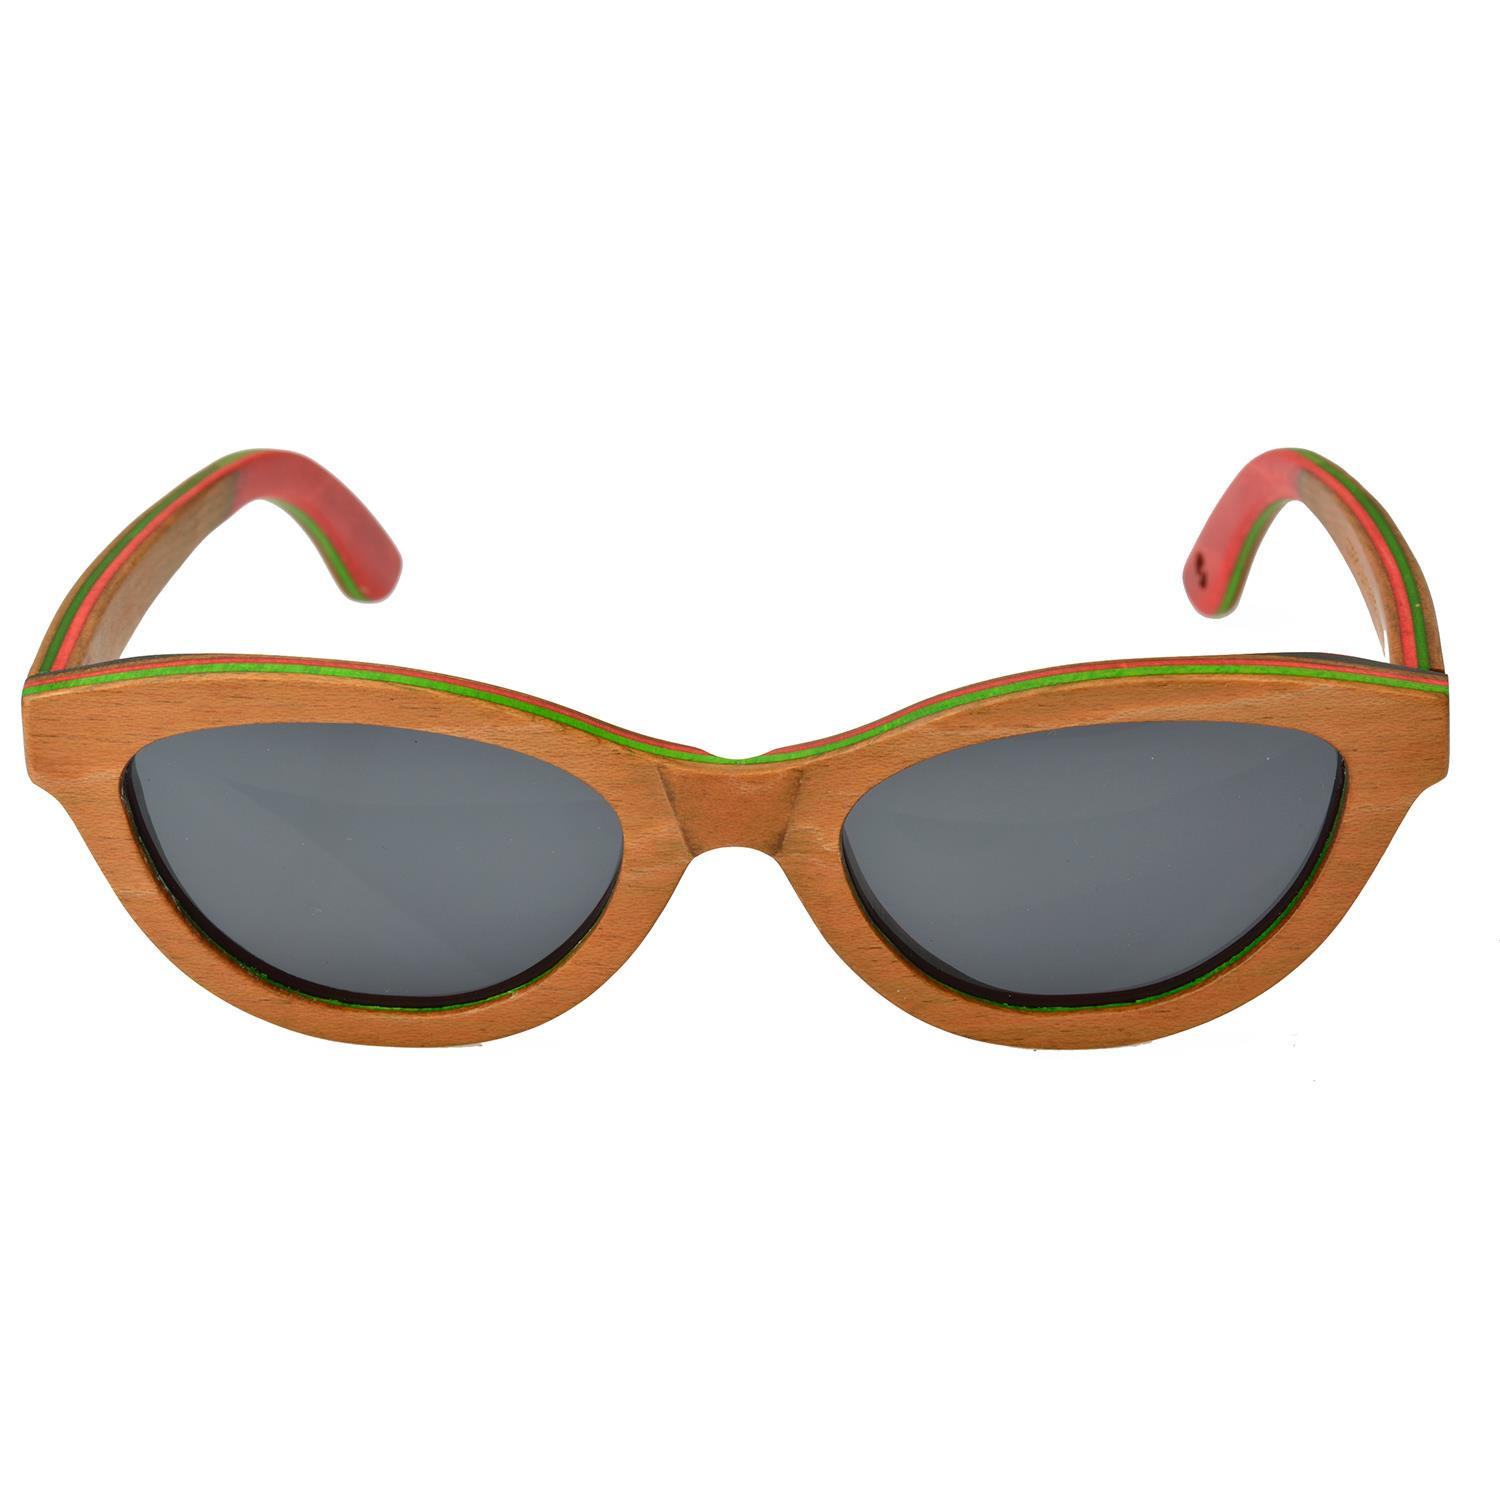 Zws06a polarized for T green srl